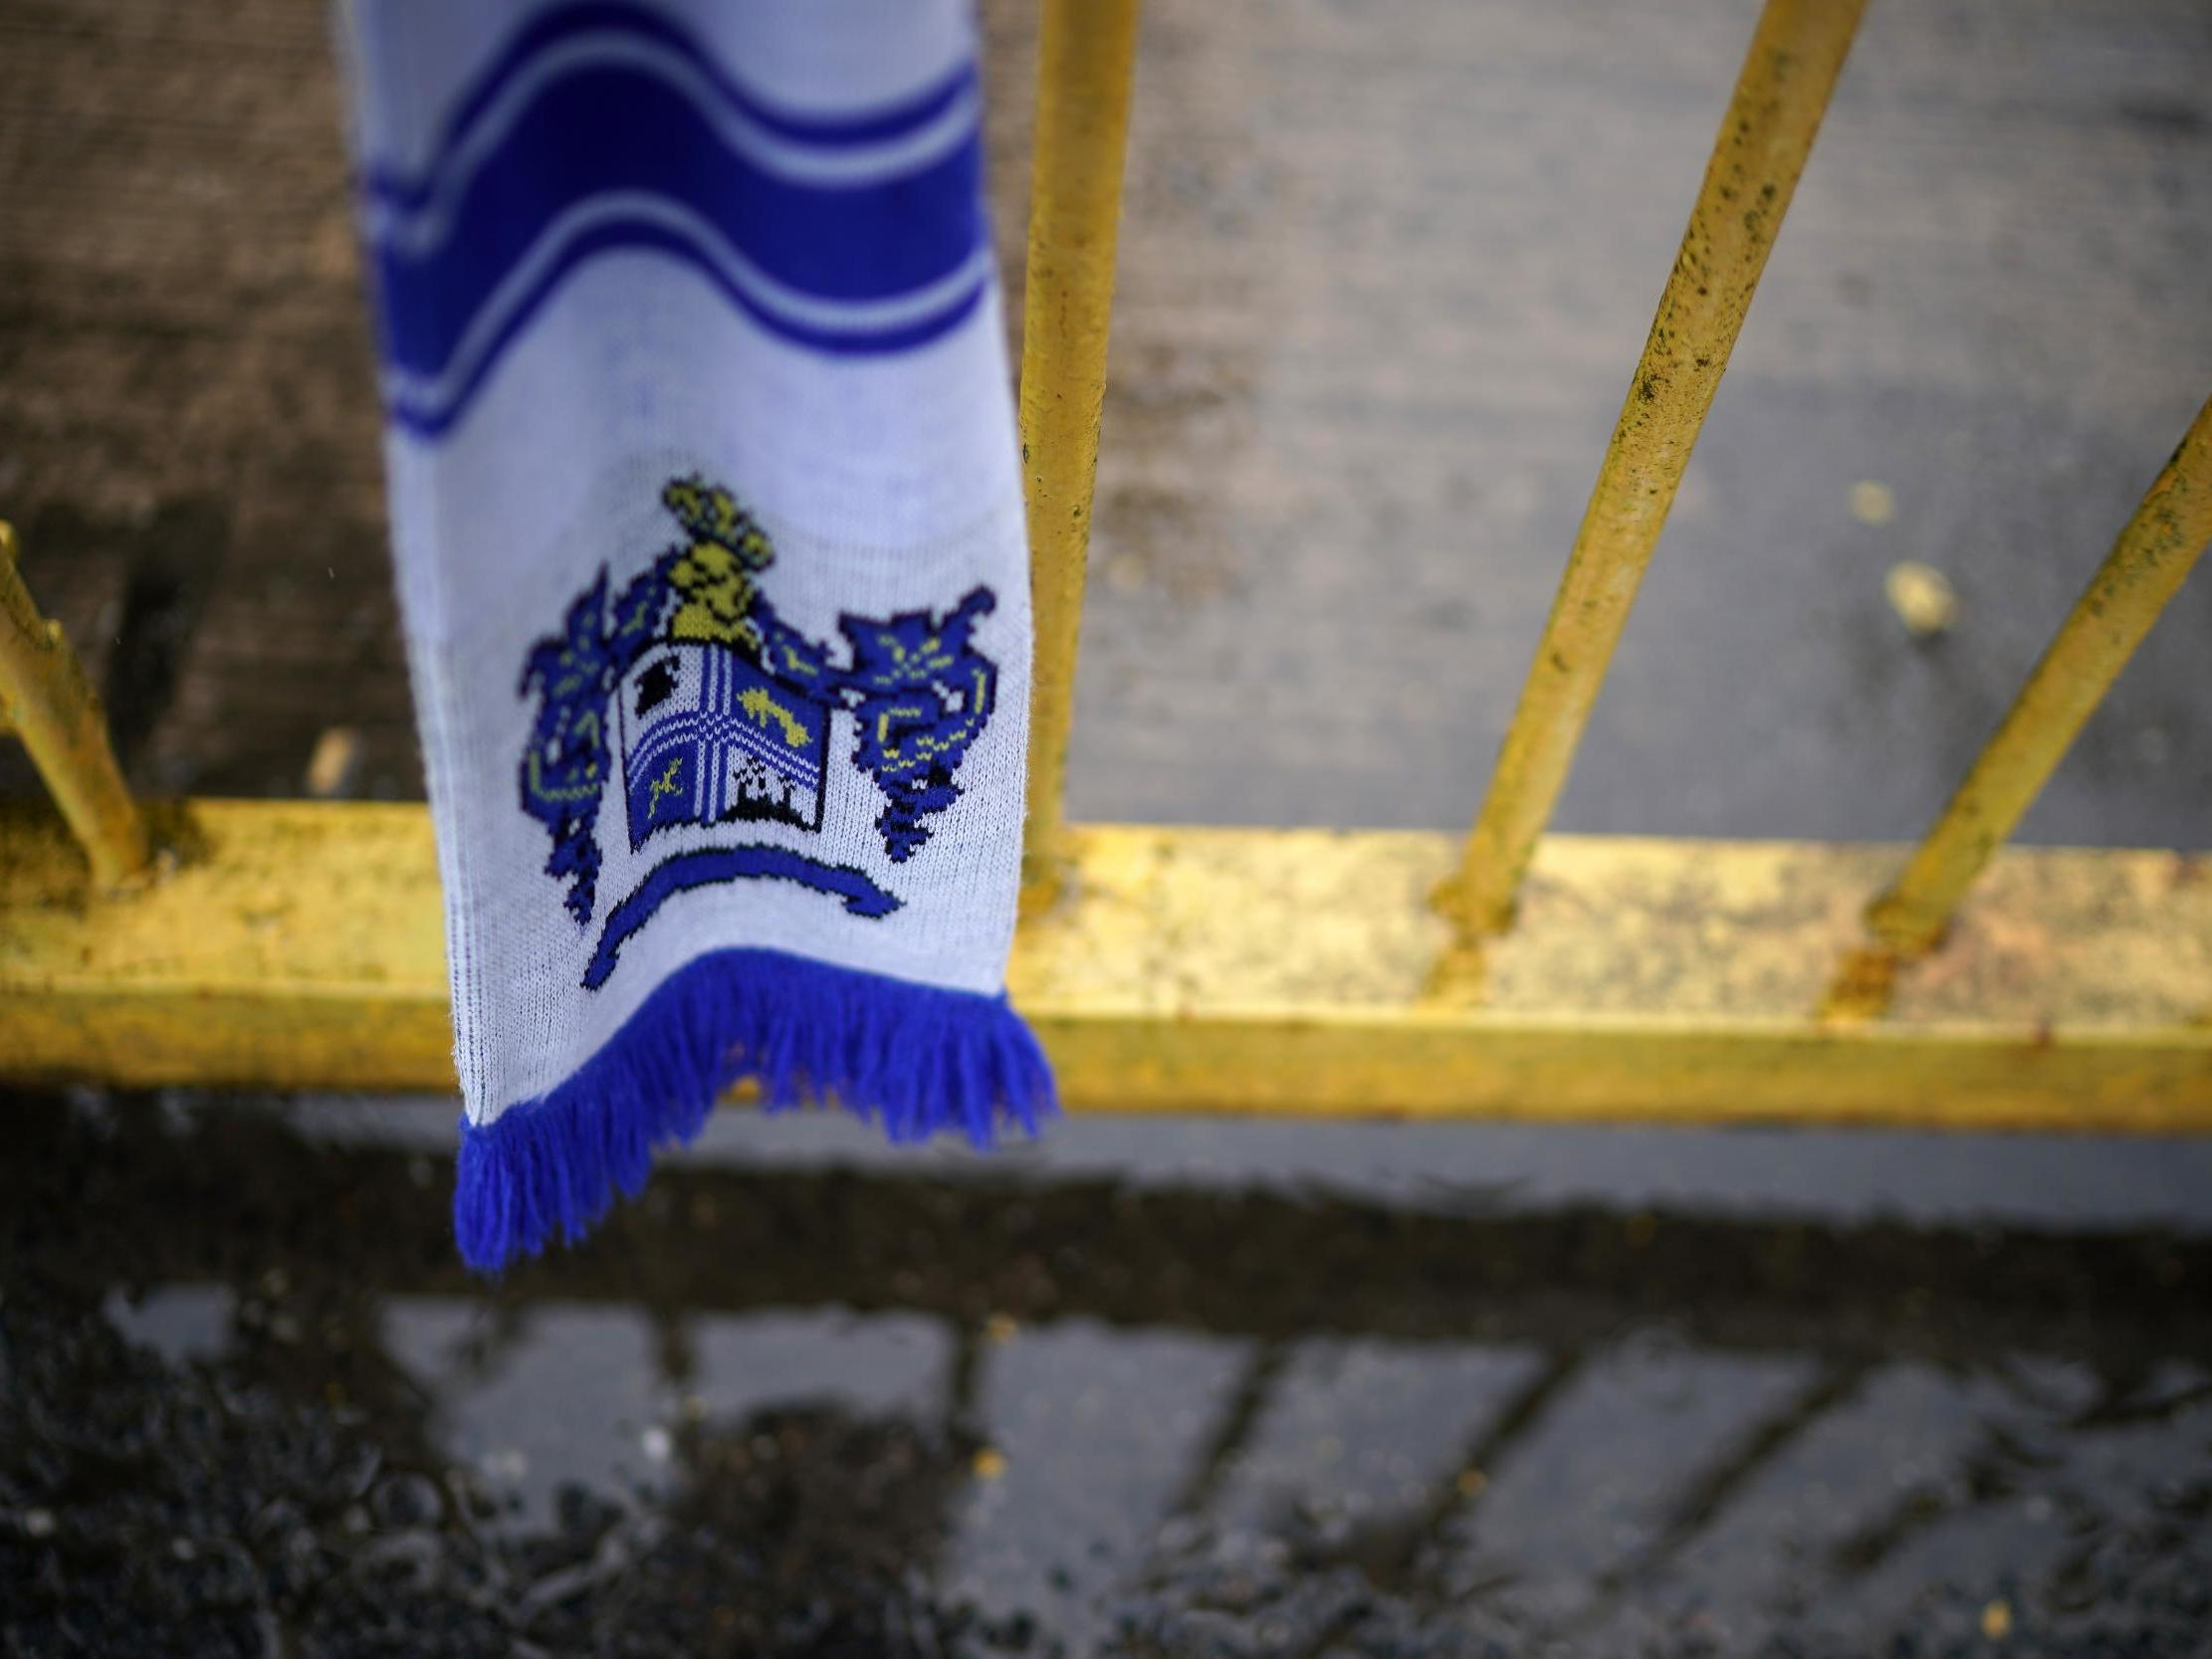 Bury hit out at 'dismal' EFL after expulsion appeal rejected